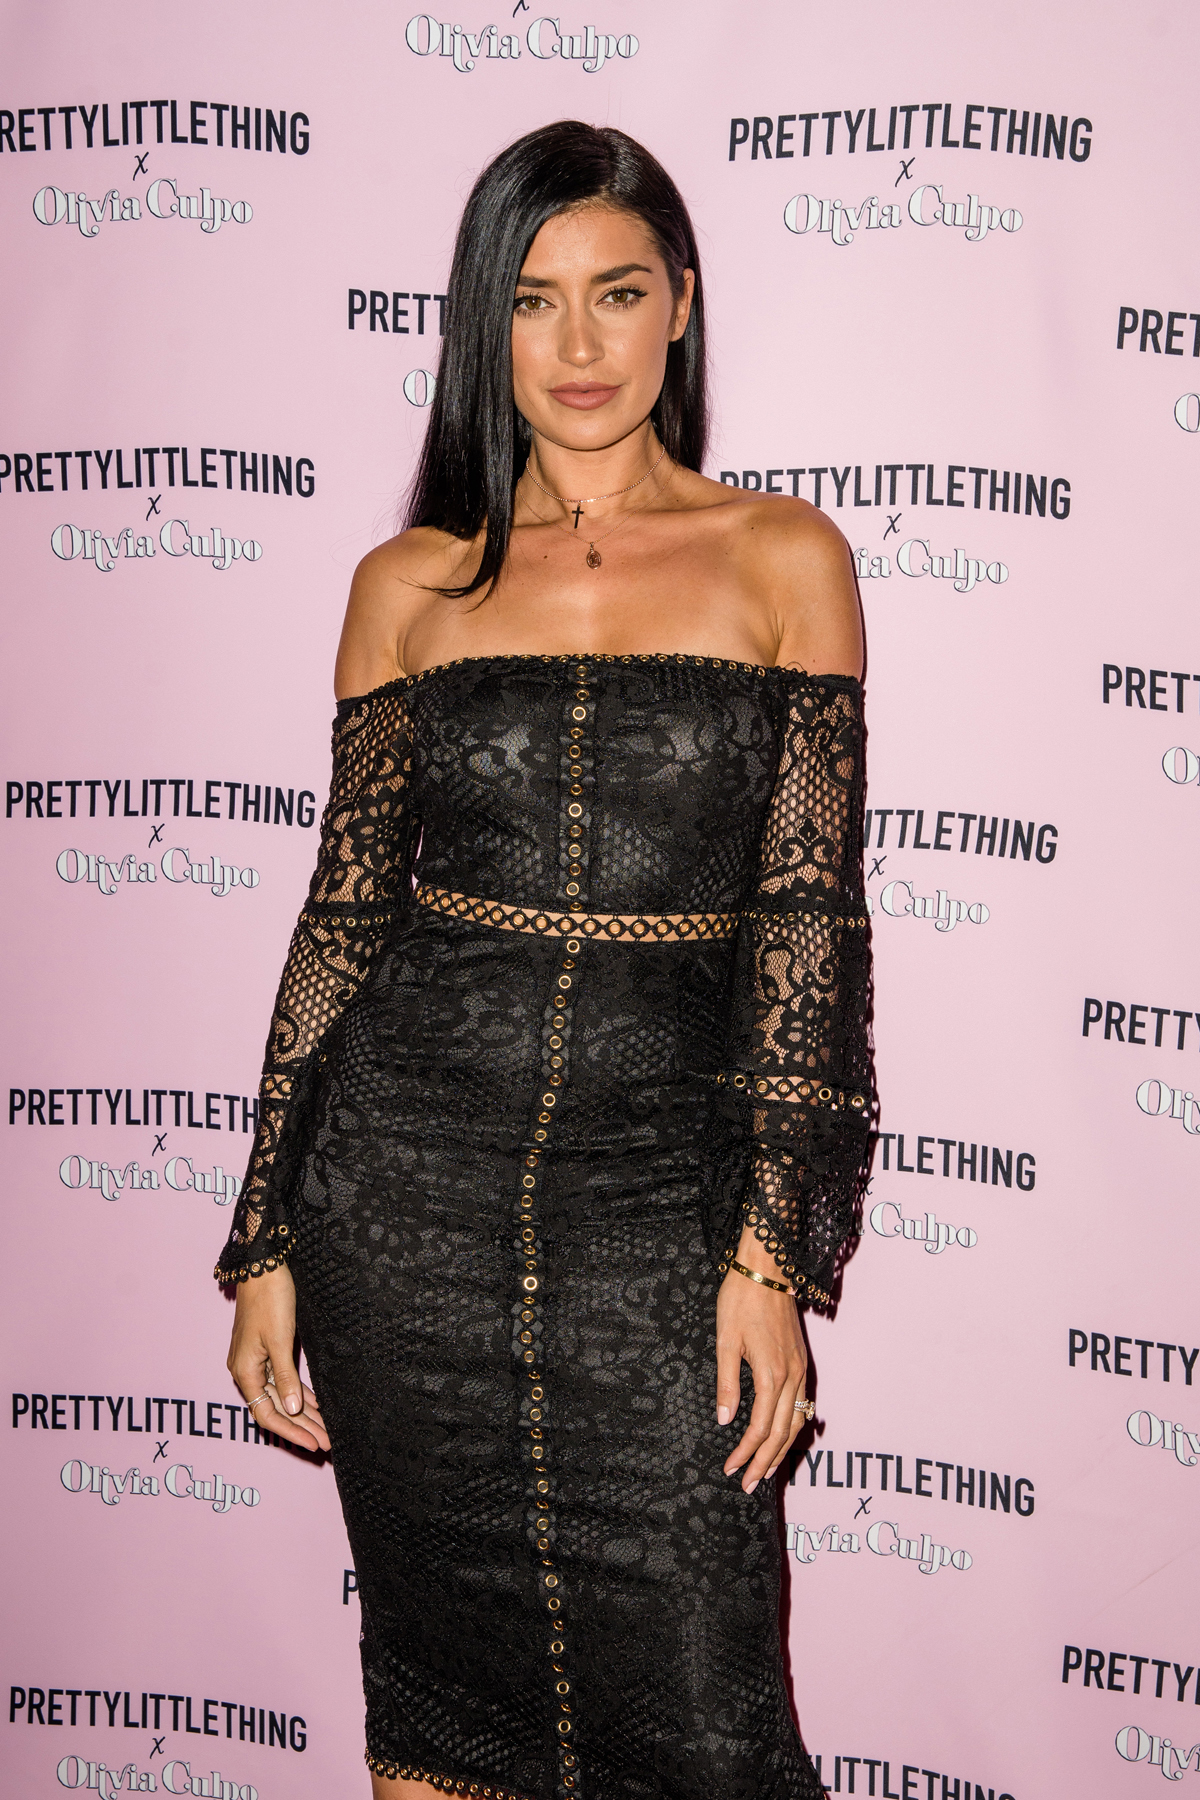 PrettyLittleThing PLT X Olivia Culpo Collection  Celebrity Launch Party WAGSs Nicole Williams.jpg